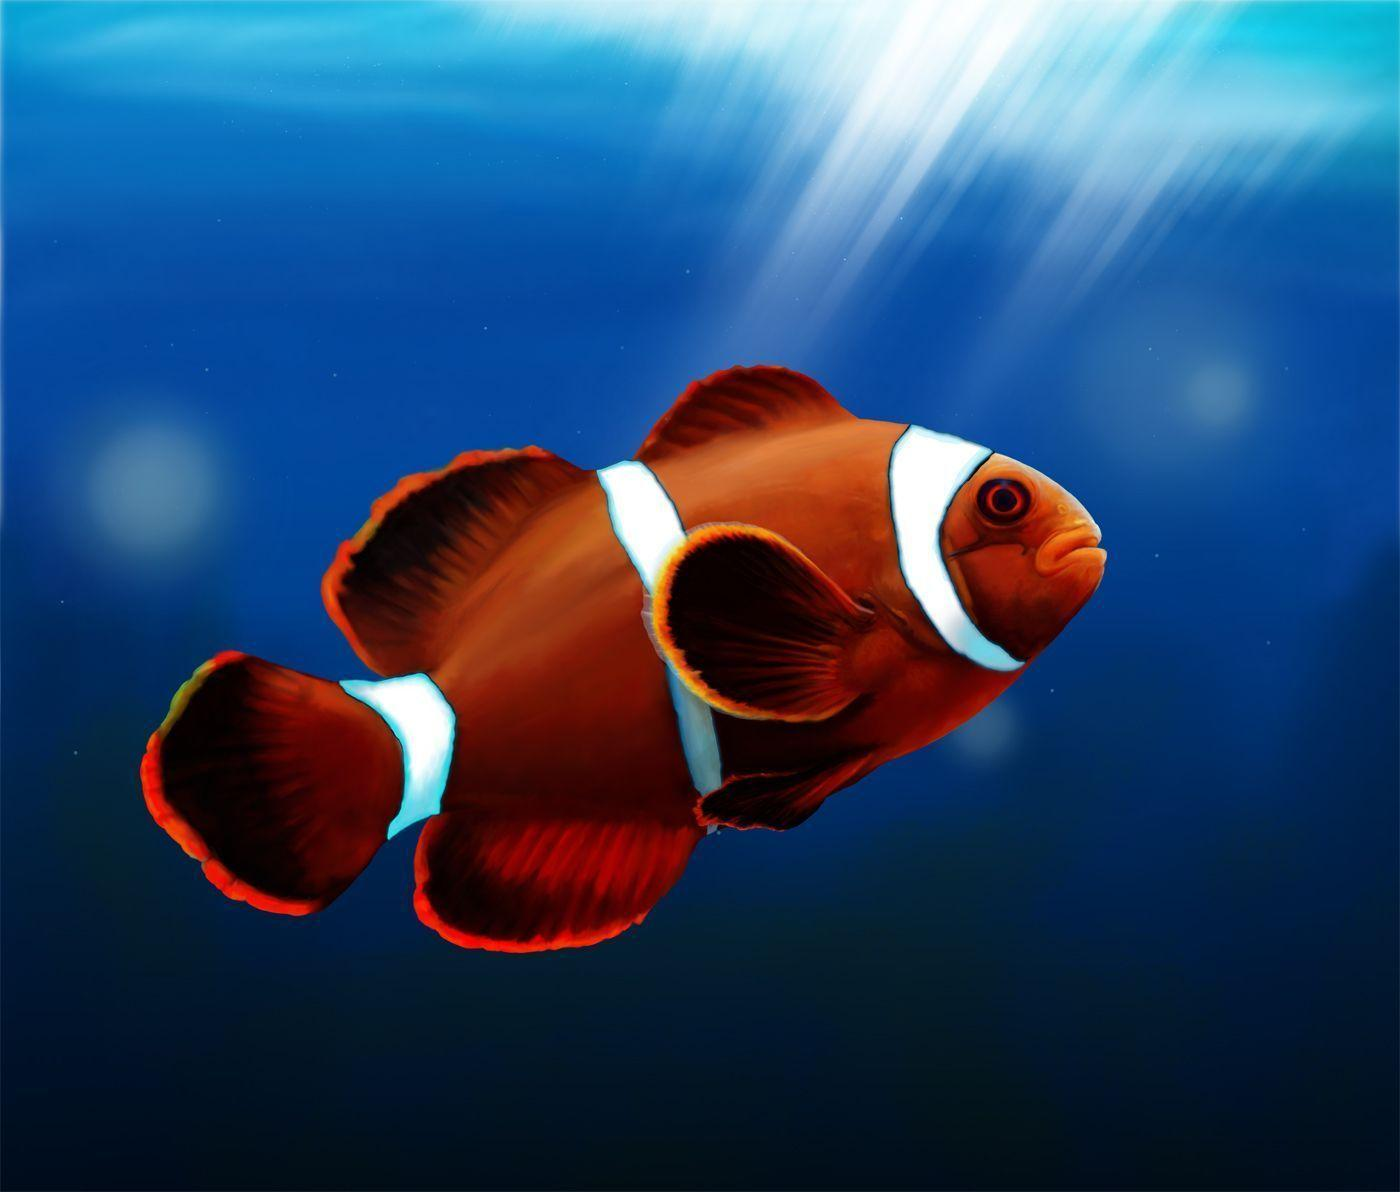 Cute Clown Fish Wallpapers For Android. Fish, Wallpapers, Cute